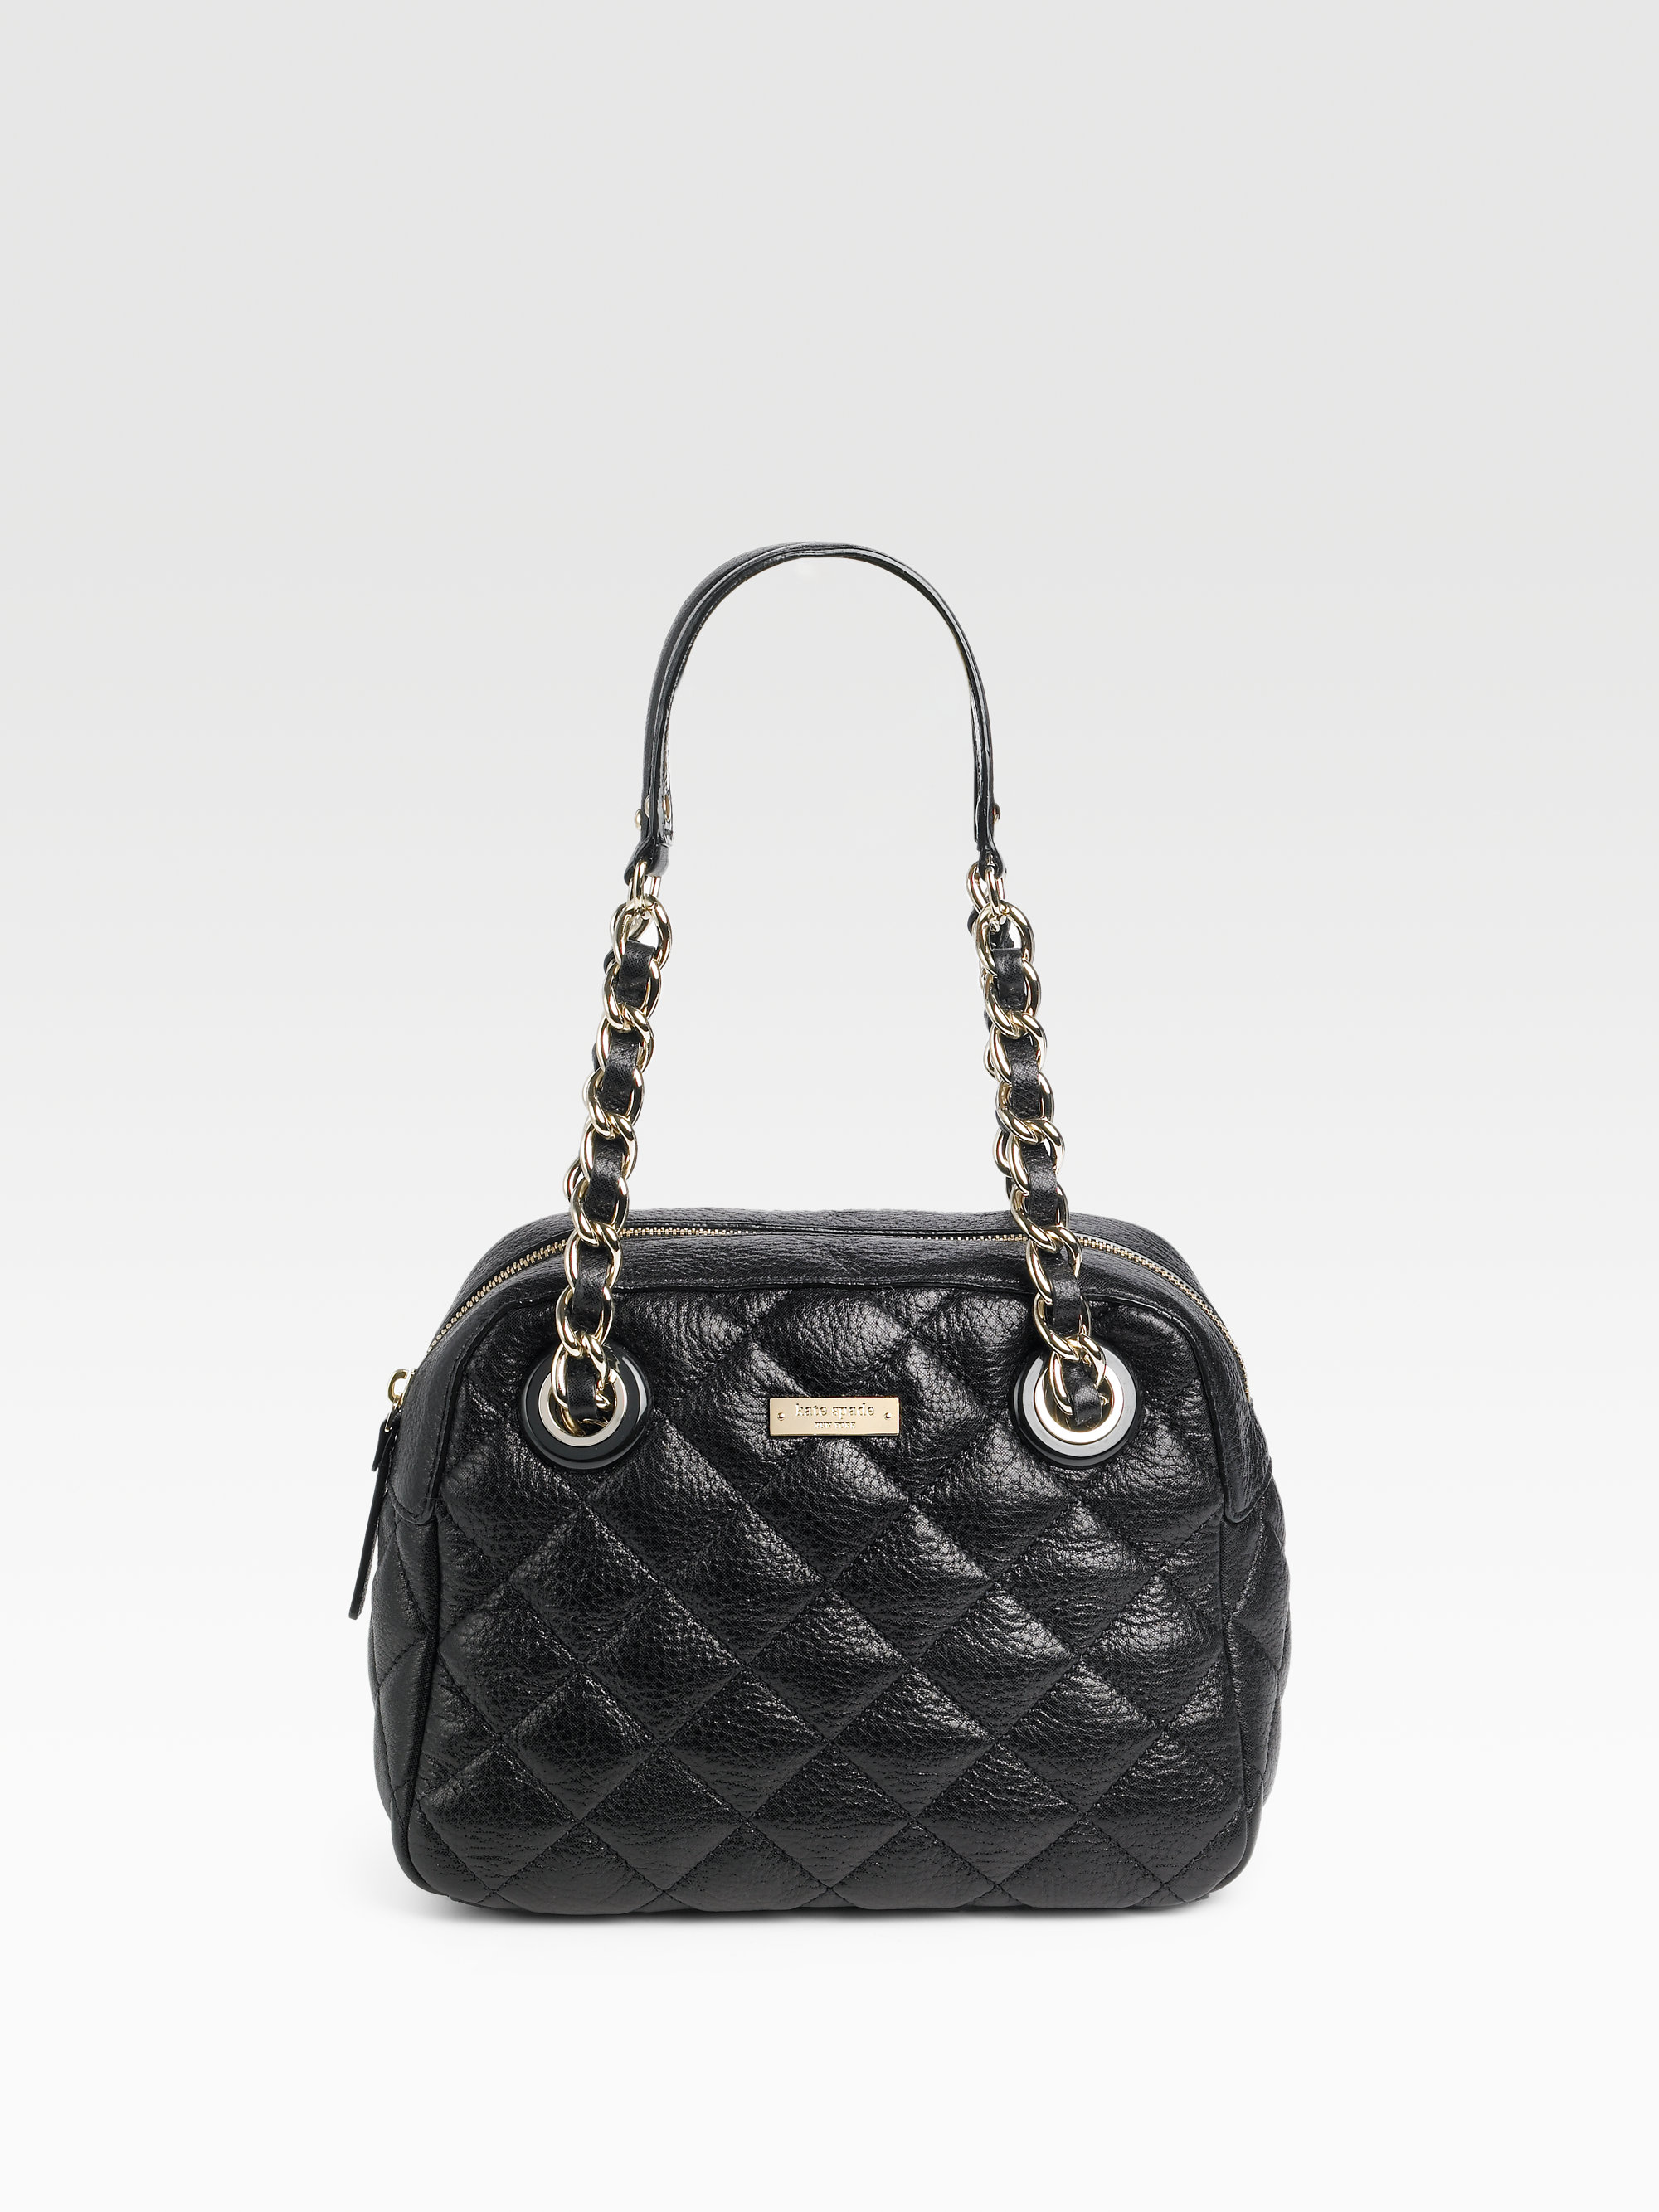 Kate Spade New York Margot Small Leather Shoulder Bag In